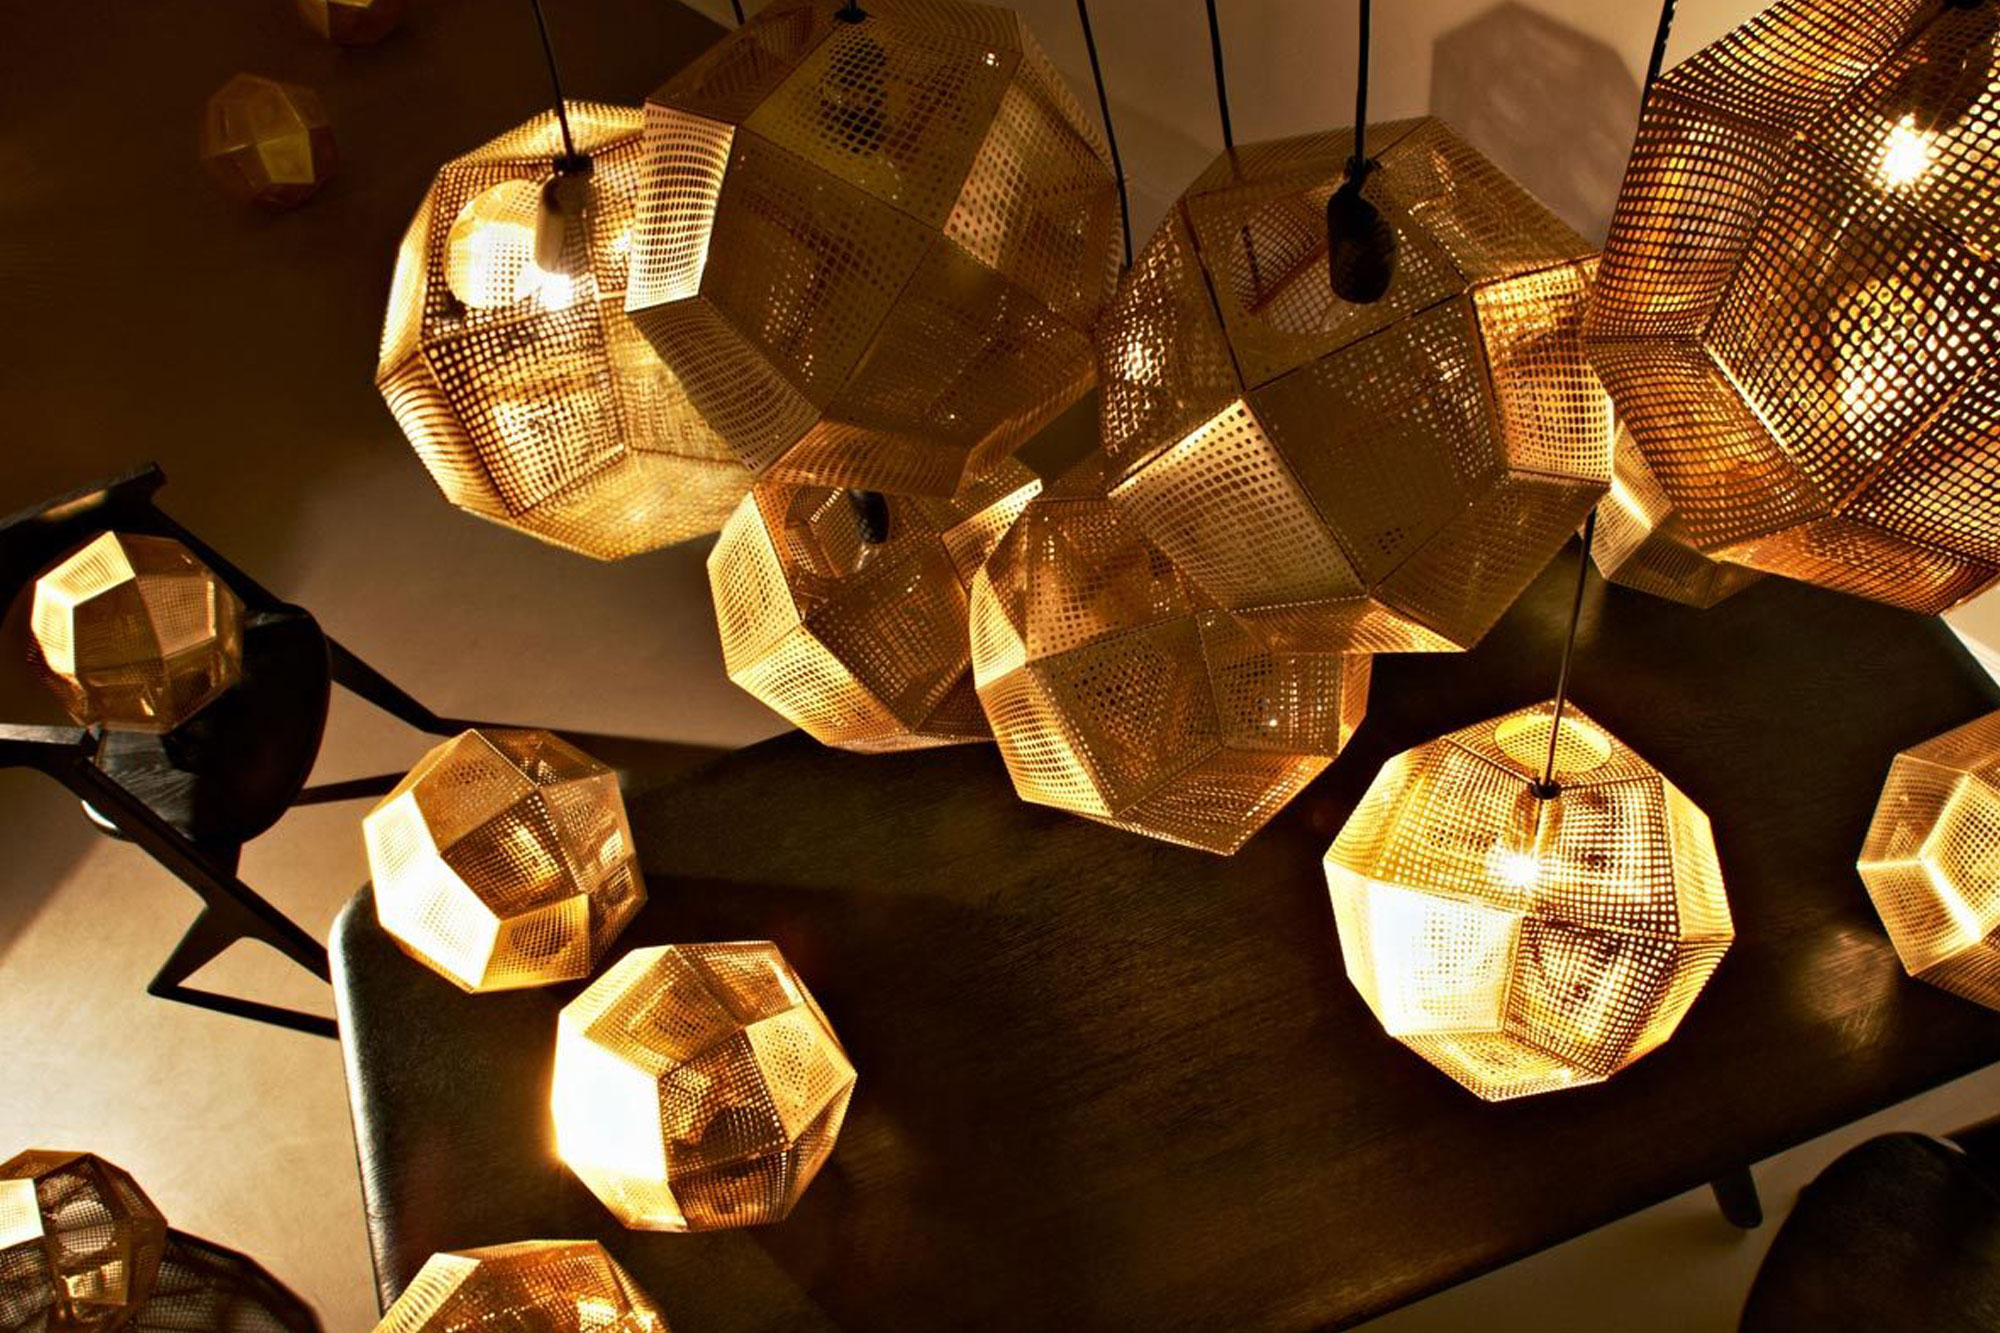 morgen-handelspartner-tomdixon-3